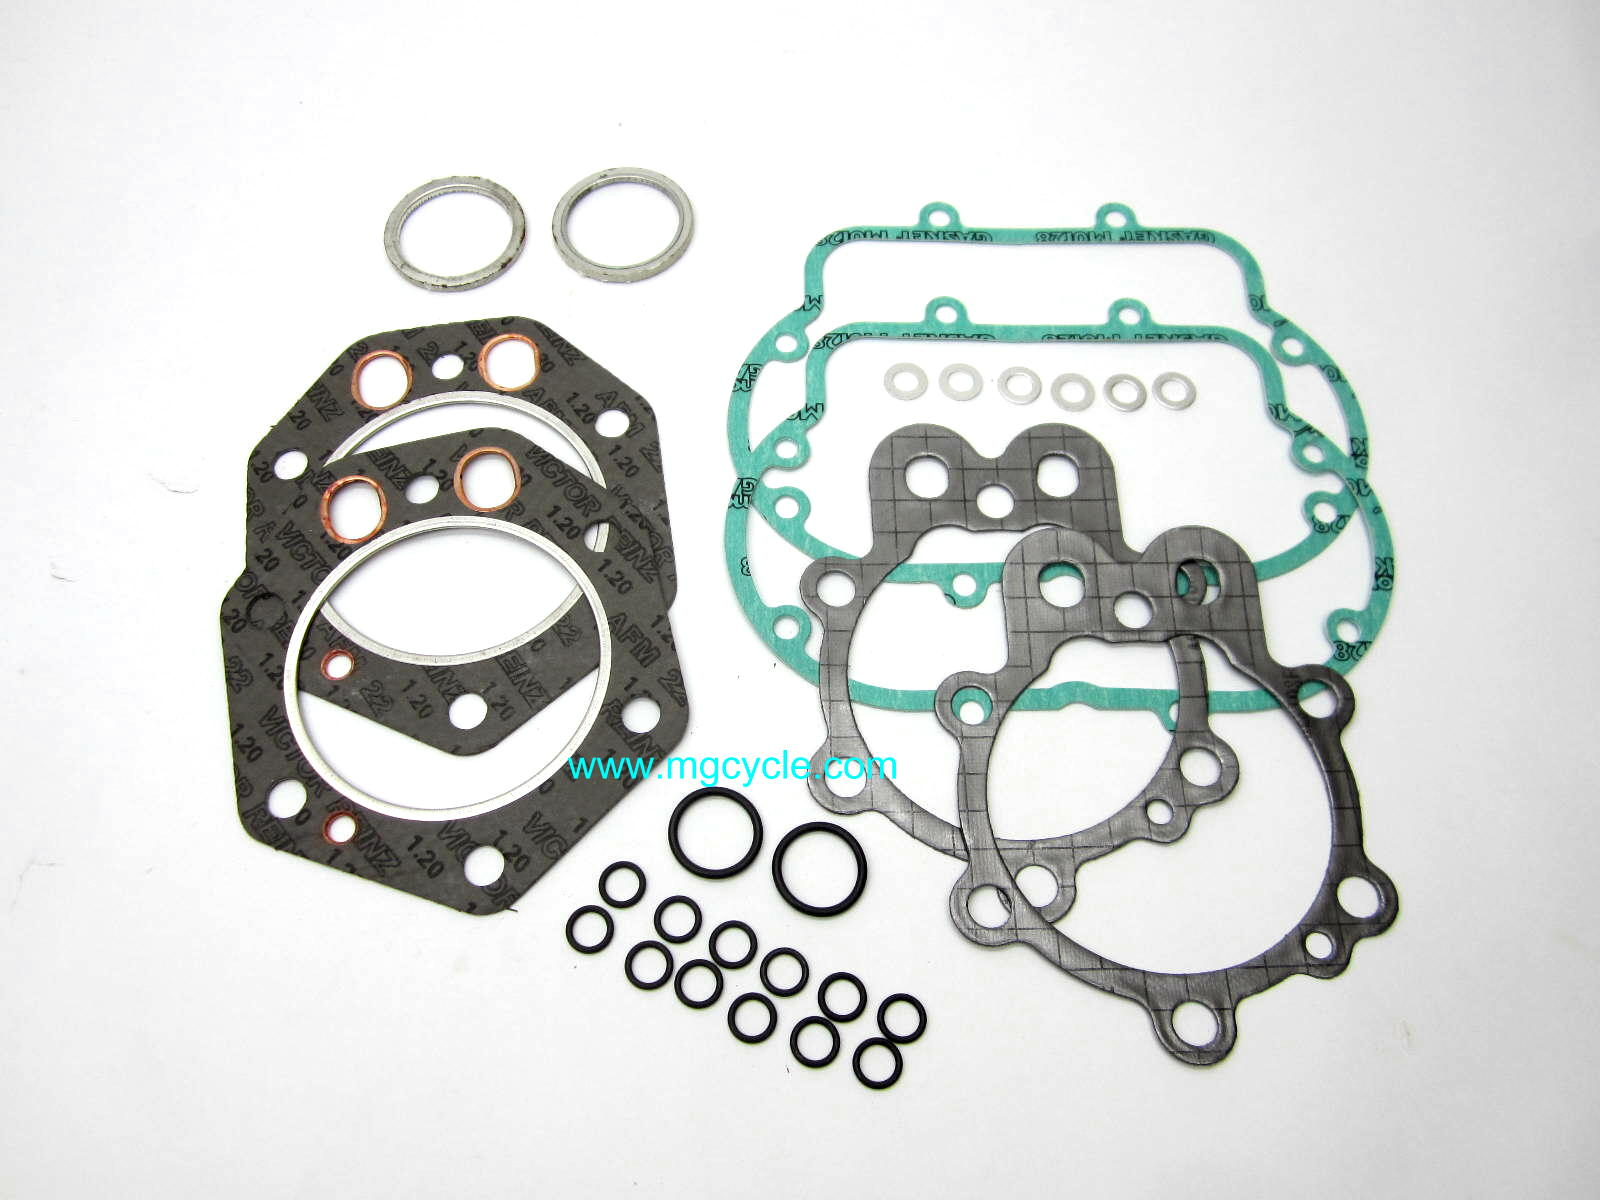 Top end engine gasket set 850T and 850T3 with Gilardoni oval